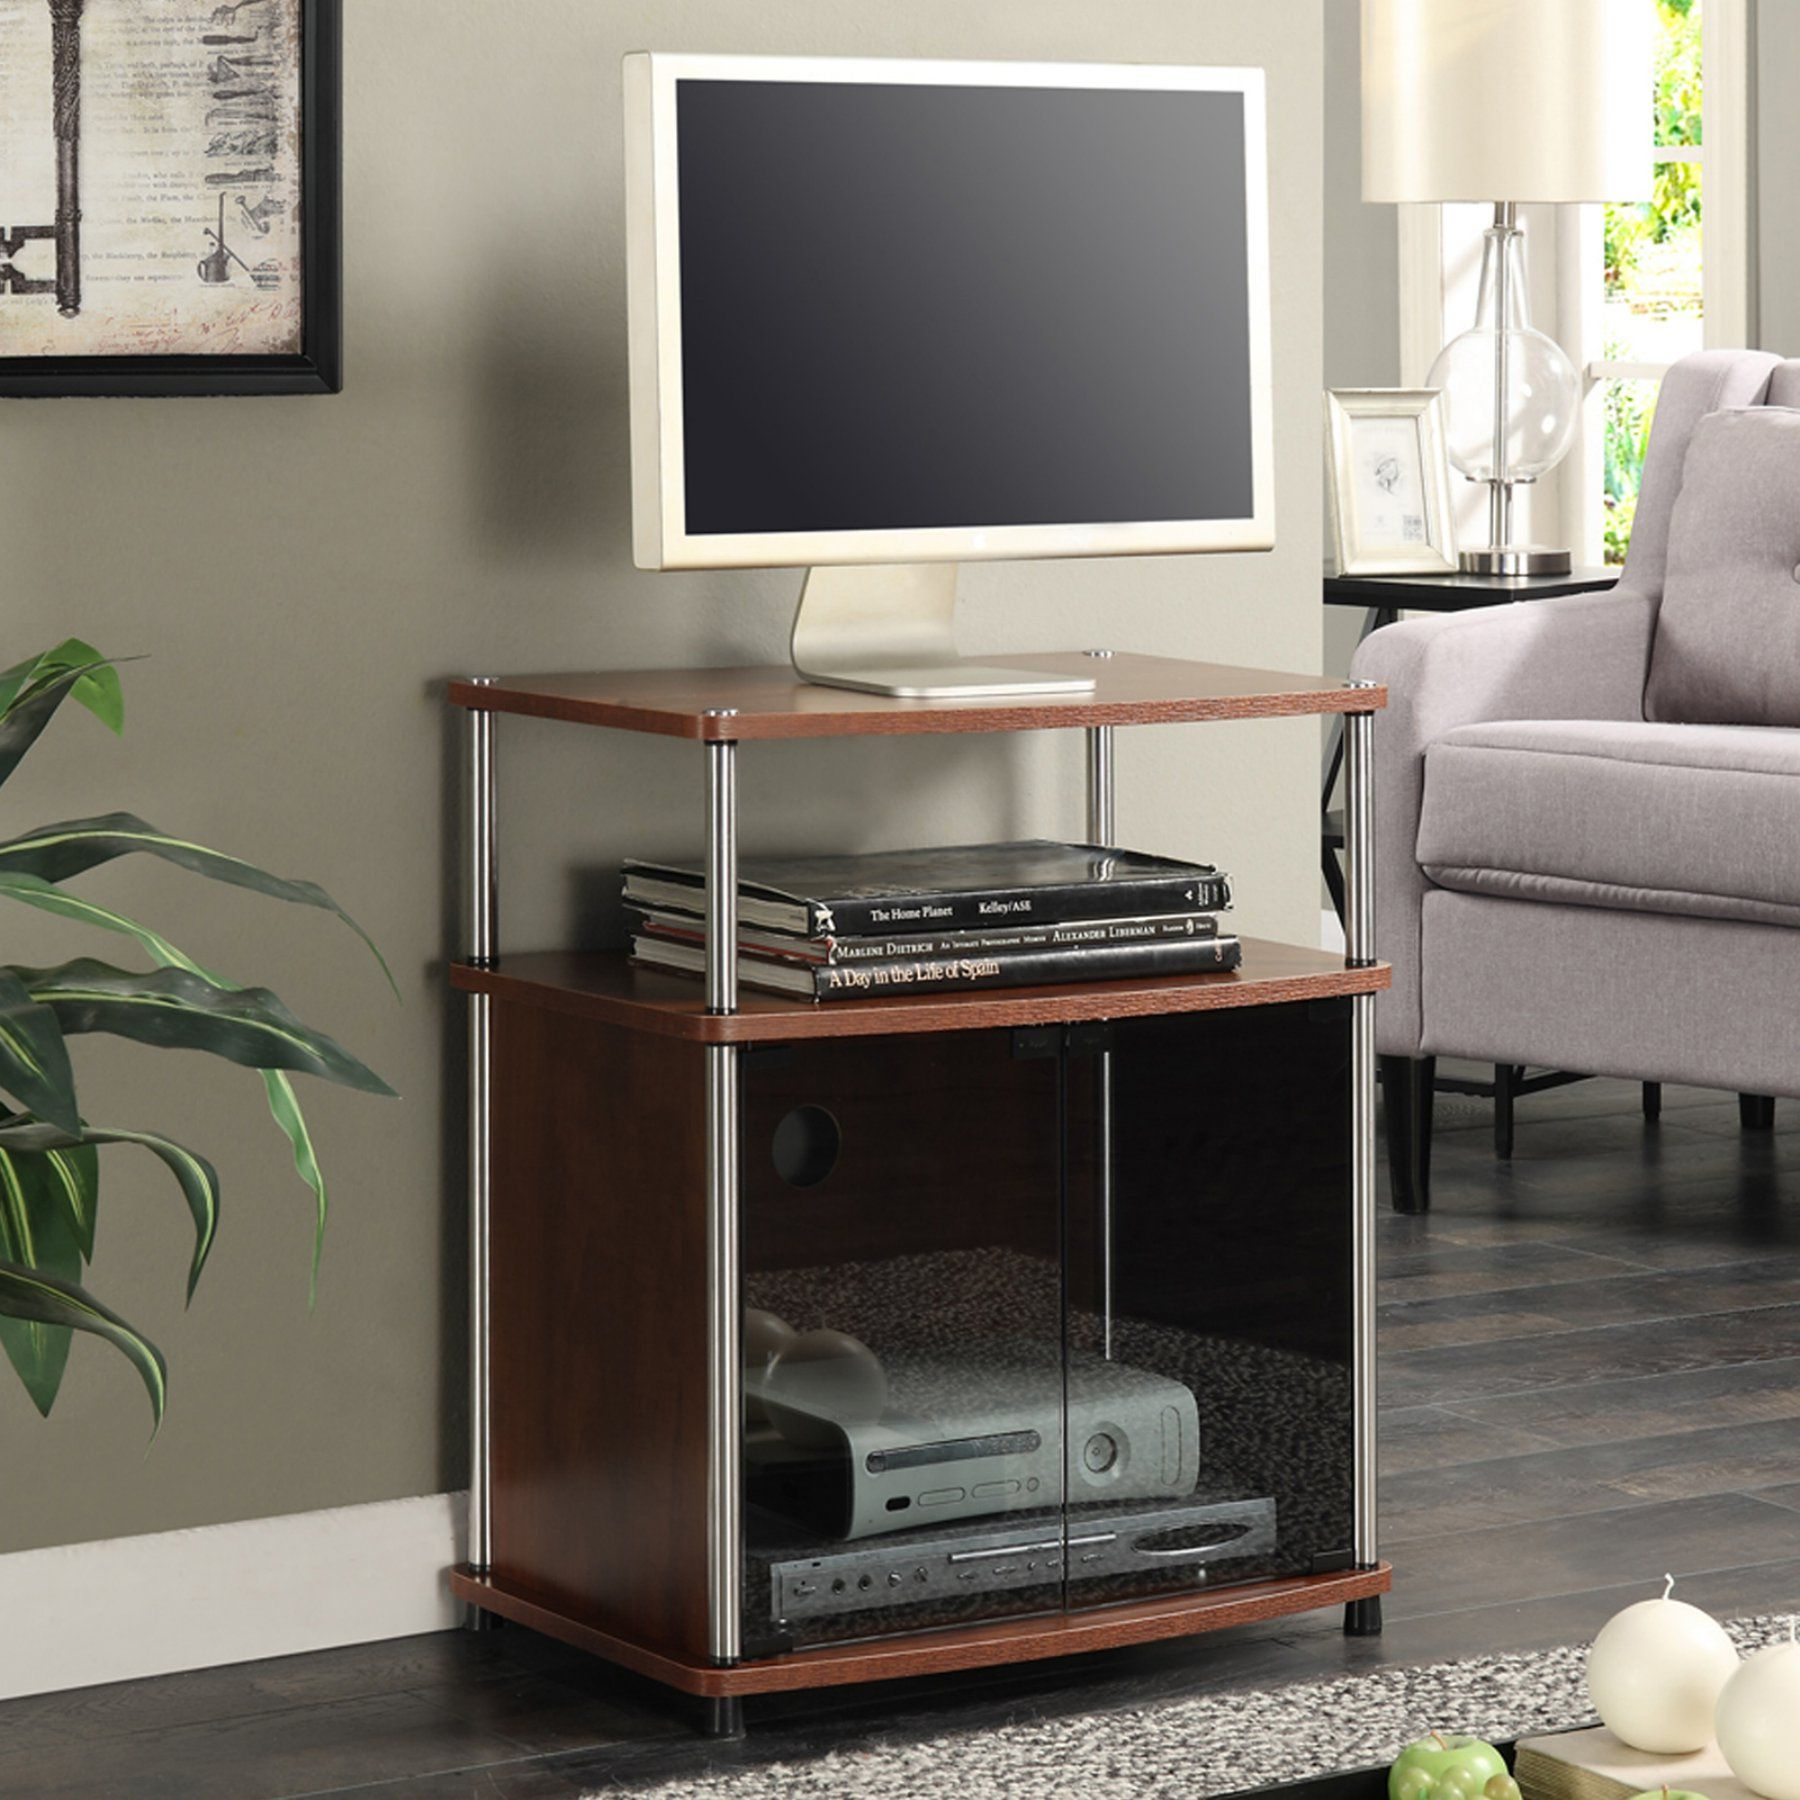 Convenience Concepts Tv Stand With Black Glass Cabinet 151056ch Tv Stand With Glass Doors Tv Stand Cabinet Glass Cabinet Doors